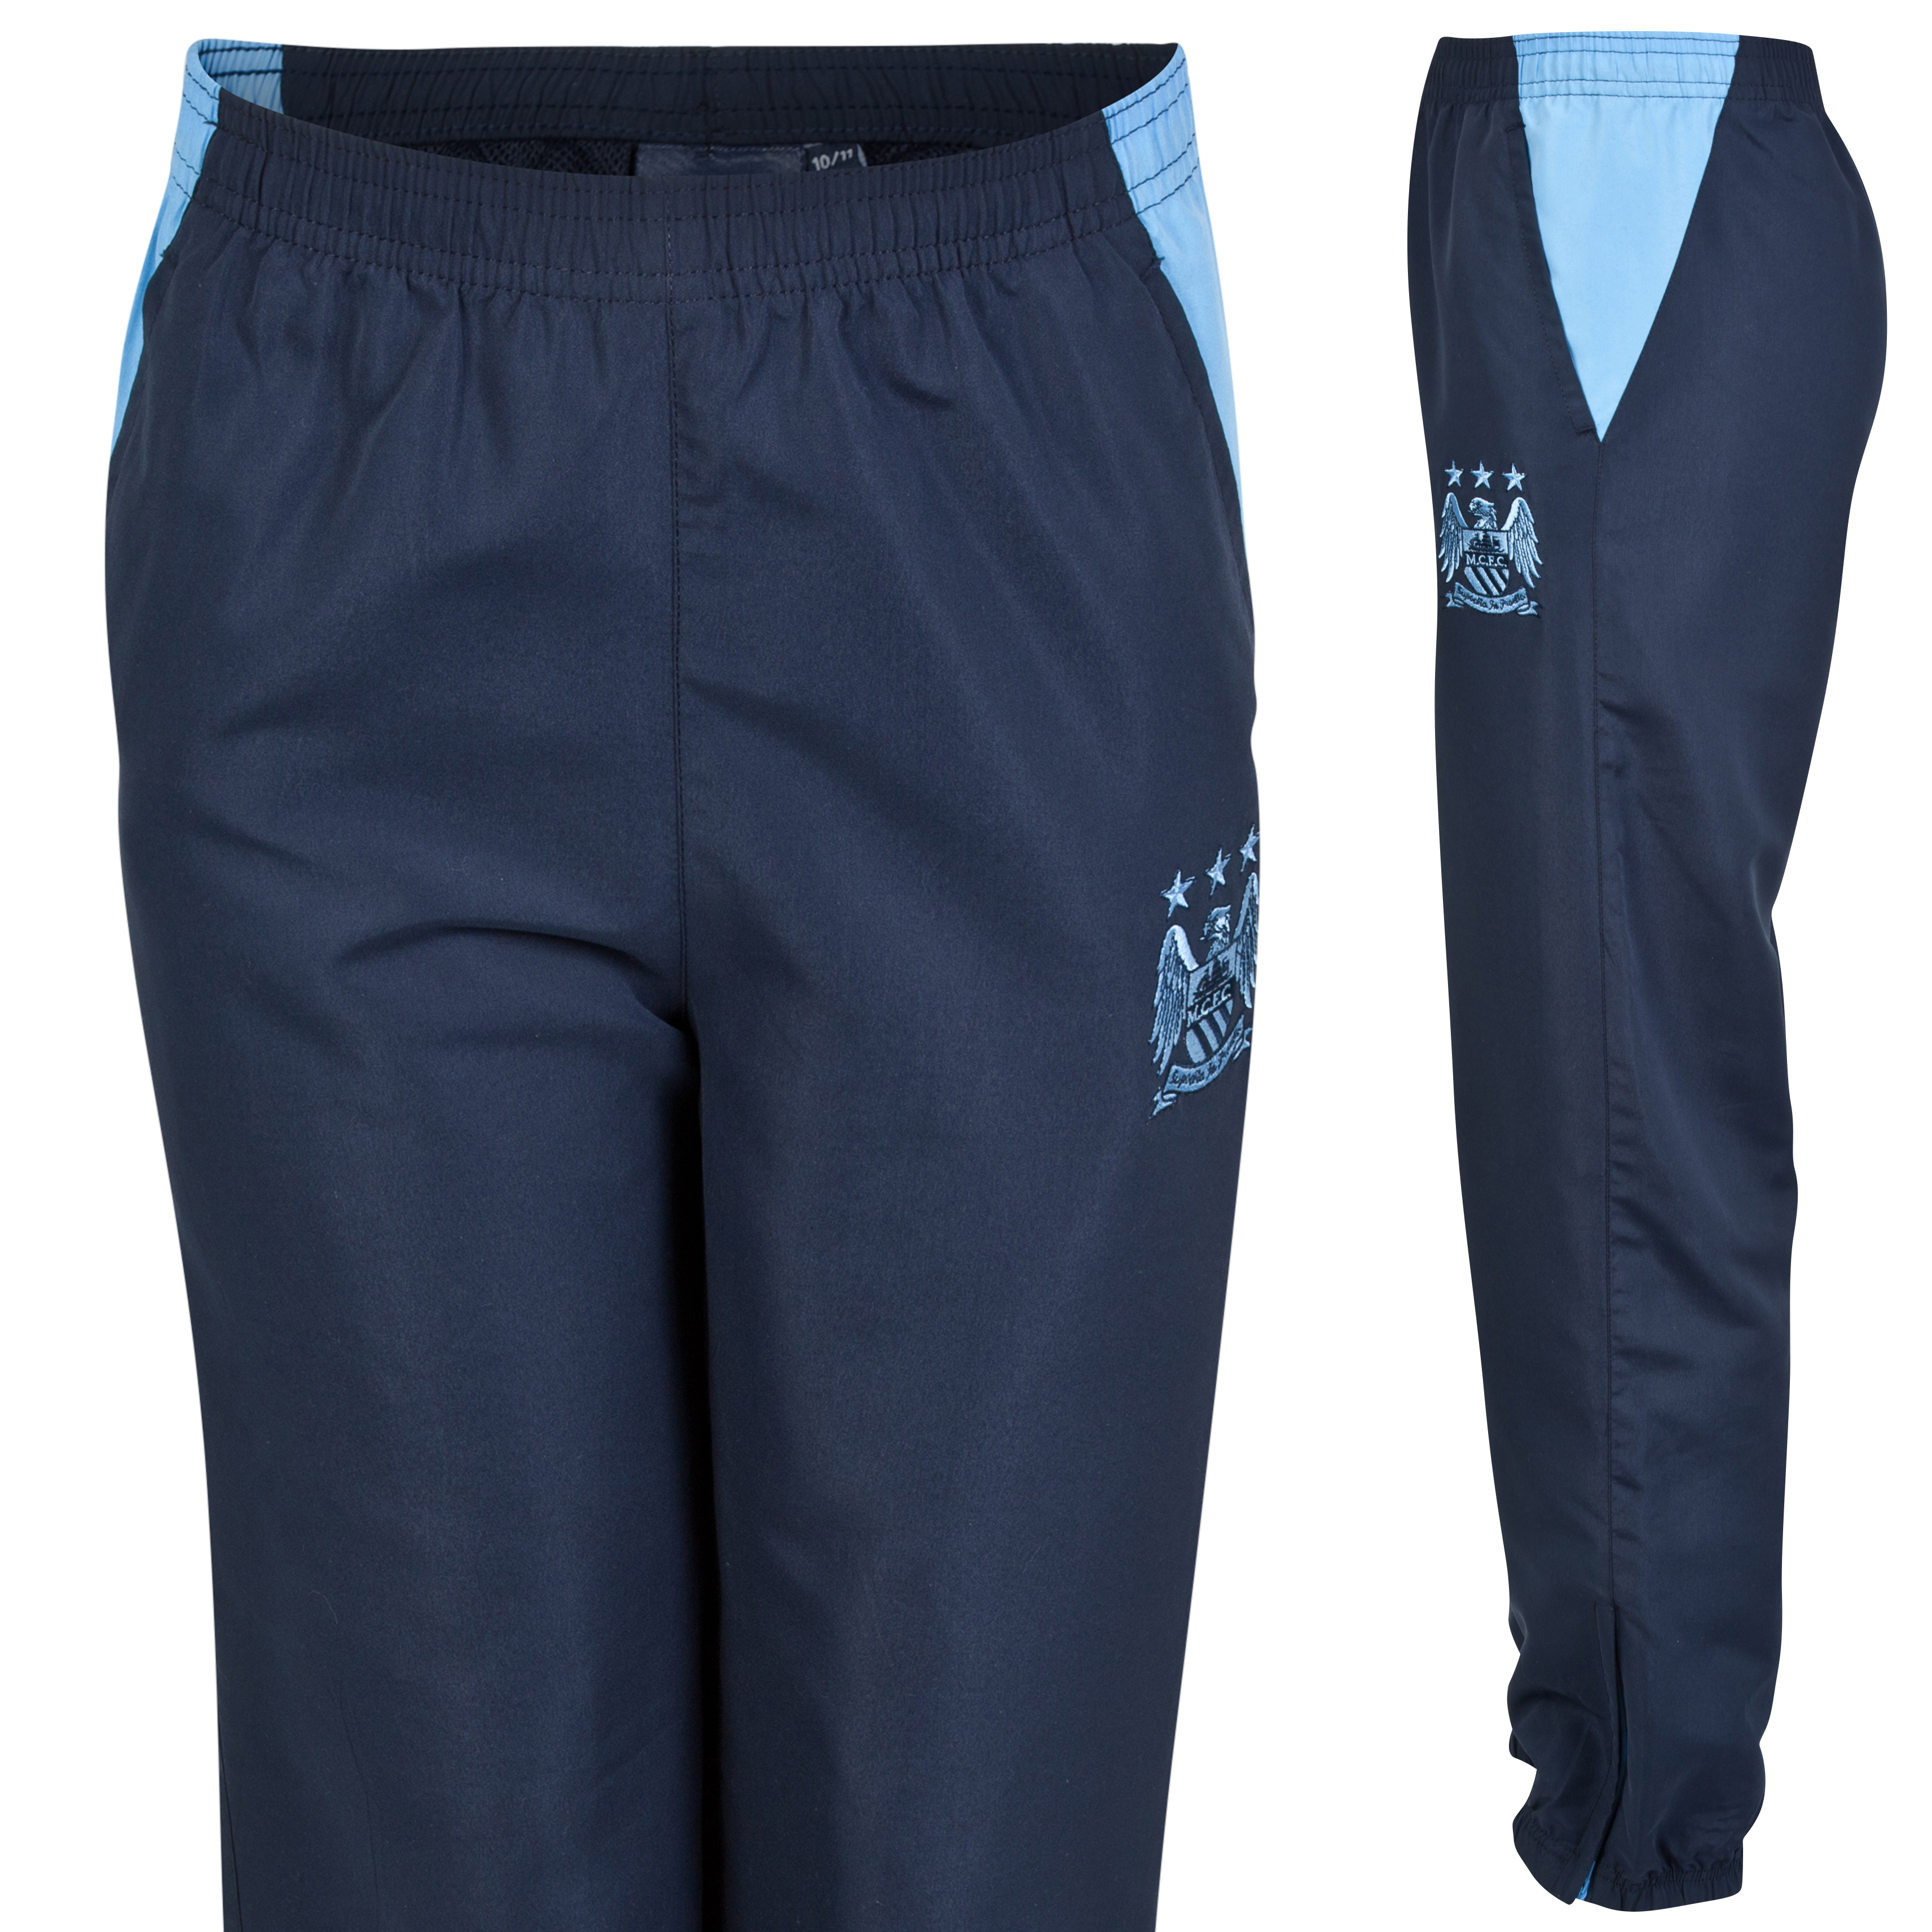 Manchester City Essential Track Pants - Navy - Infant Boys